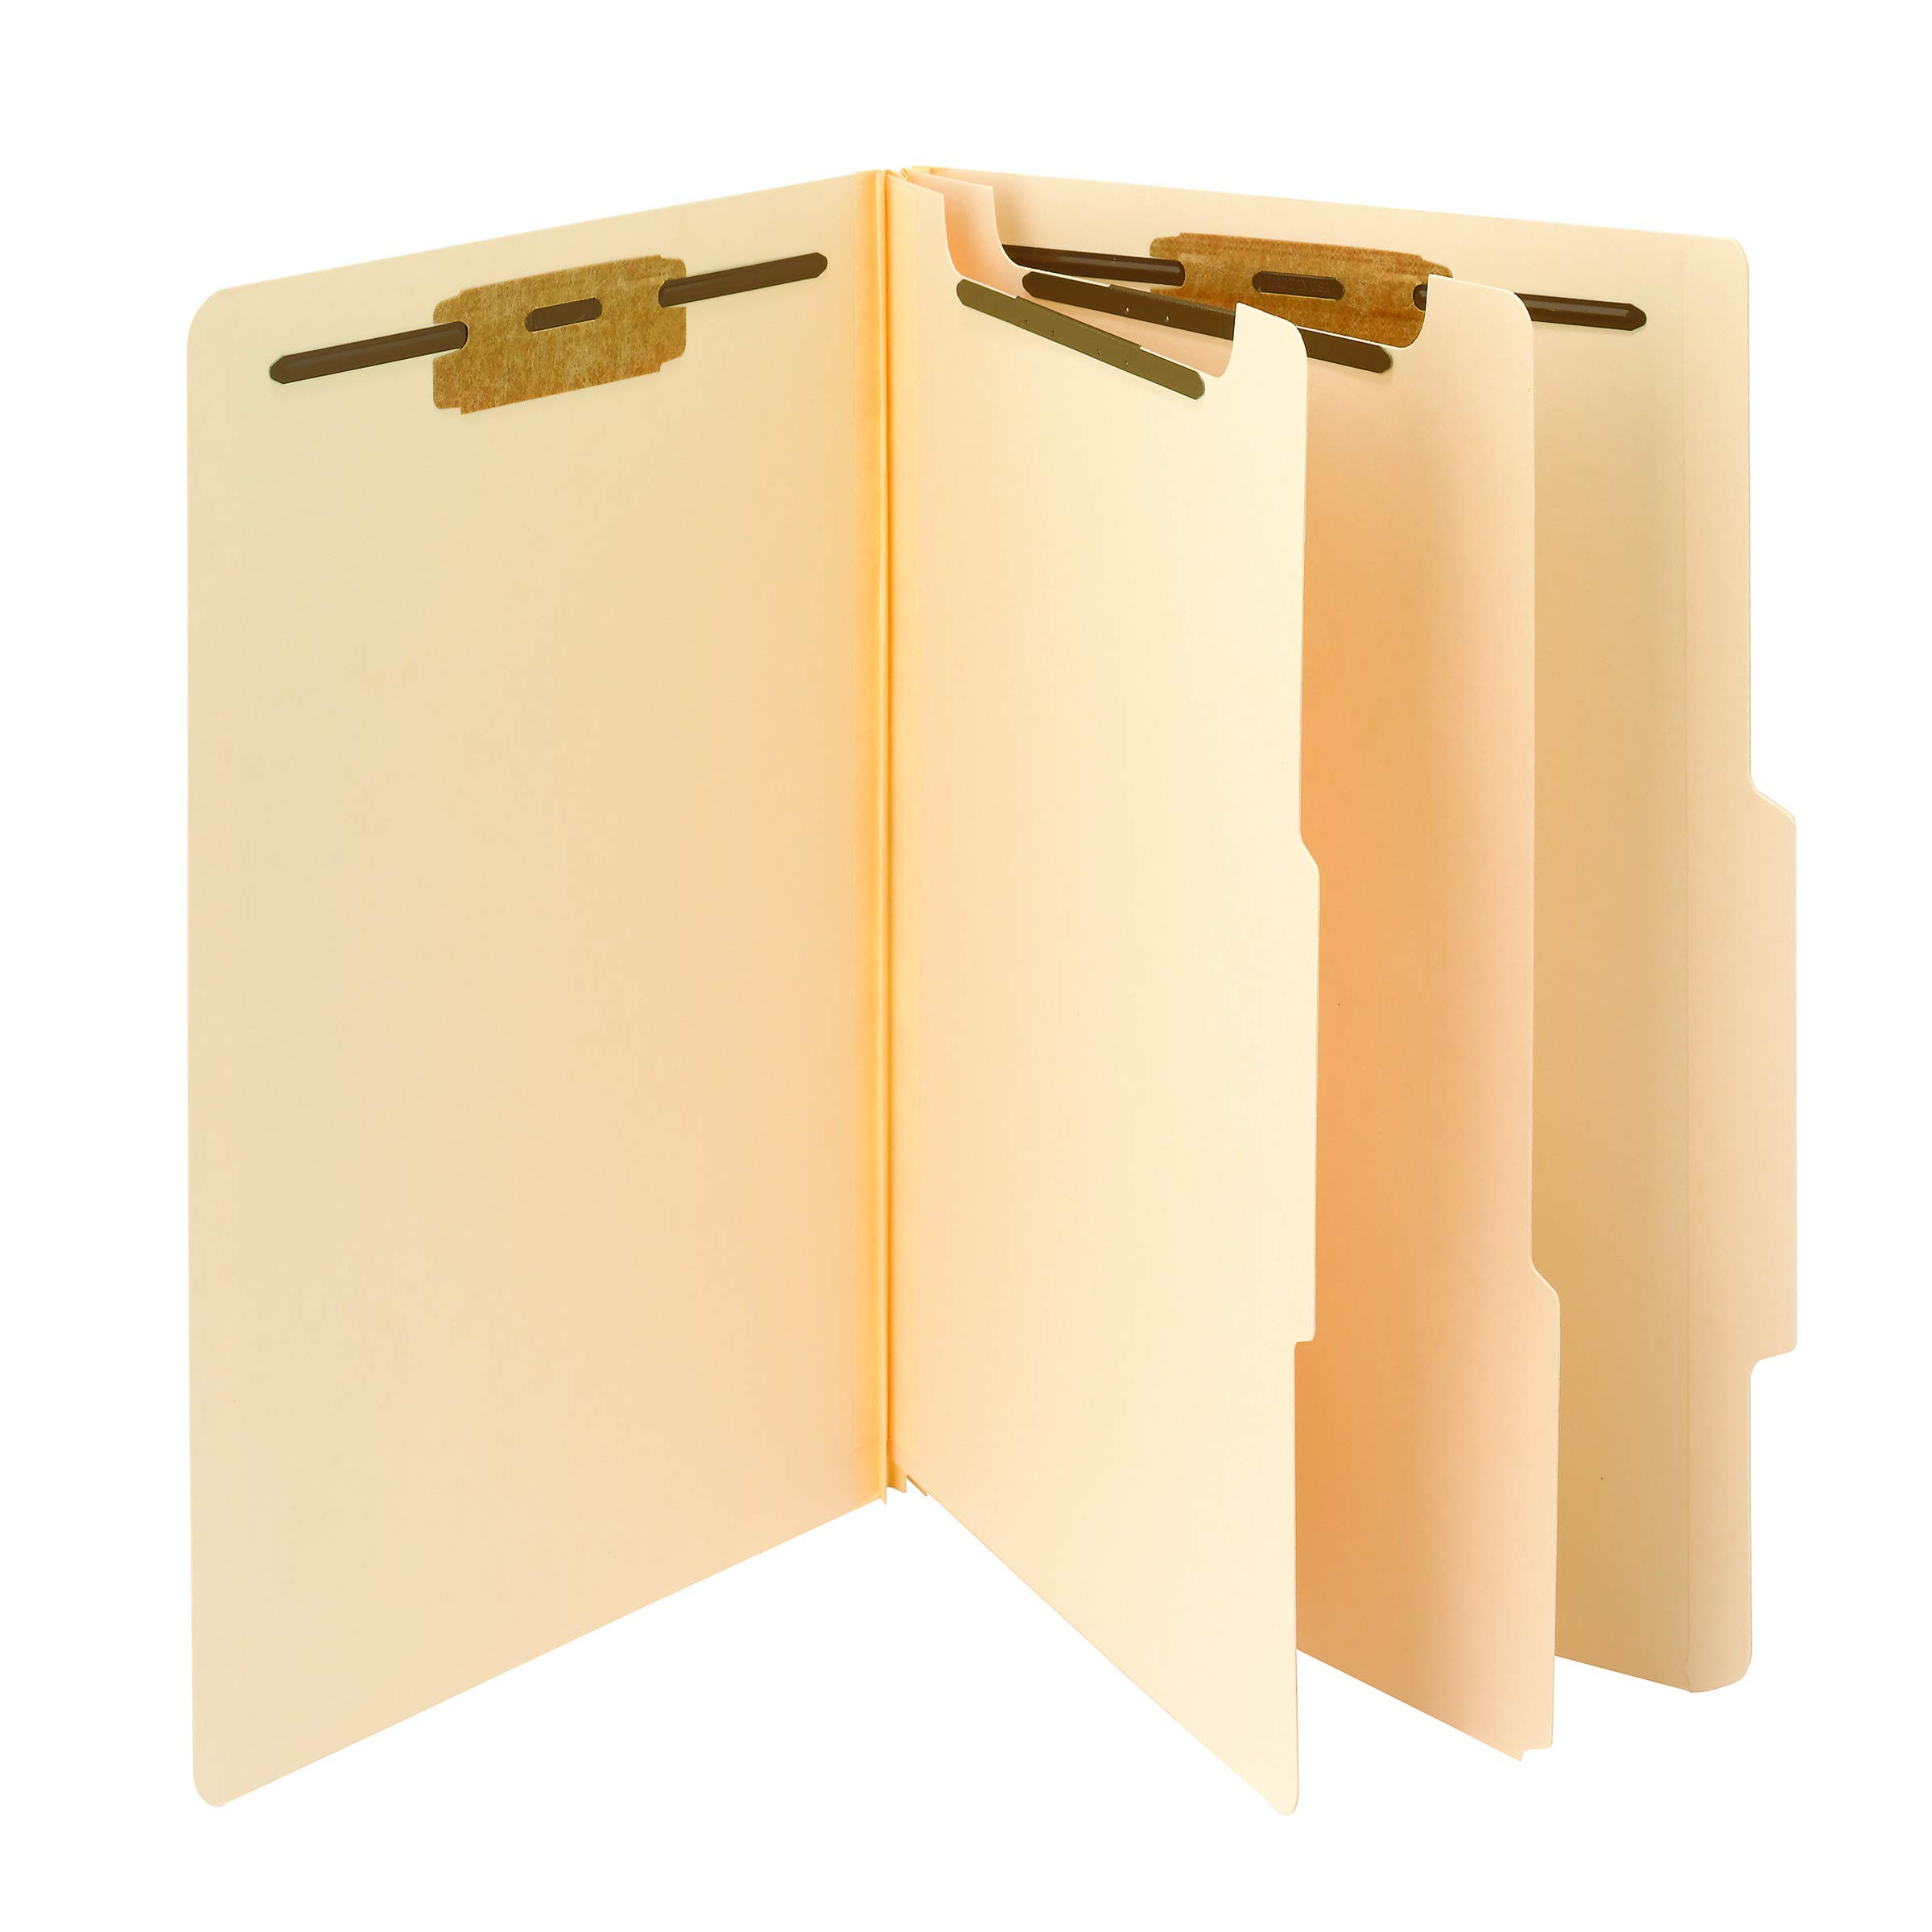 Smead Classification File Folder, 2 Dividers, 2'' Expansion, 2/5-Cut Tab, Legal Size, Manila, 10 per Box (19000) by Smead